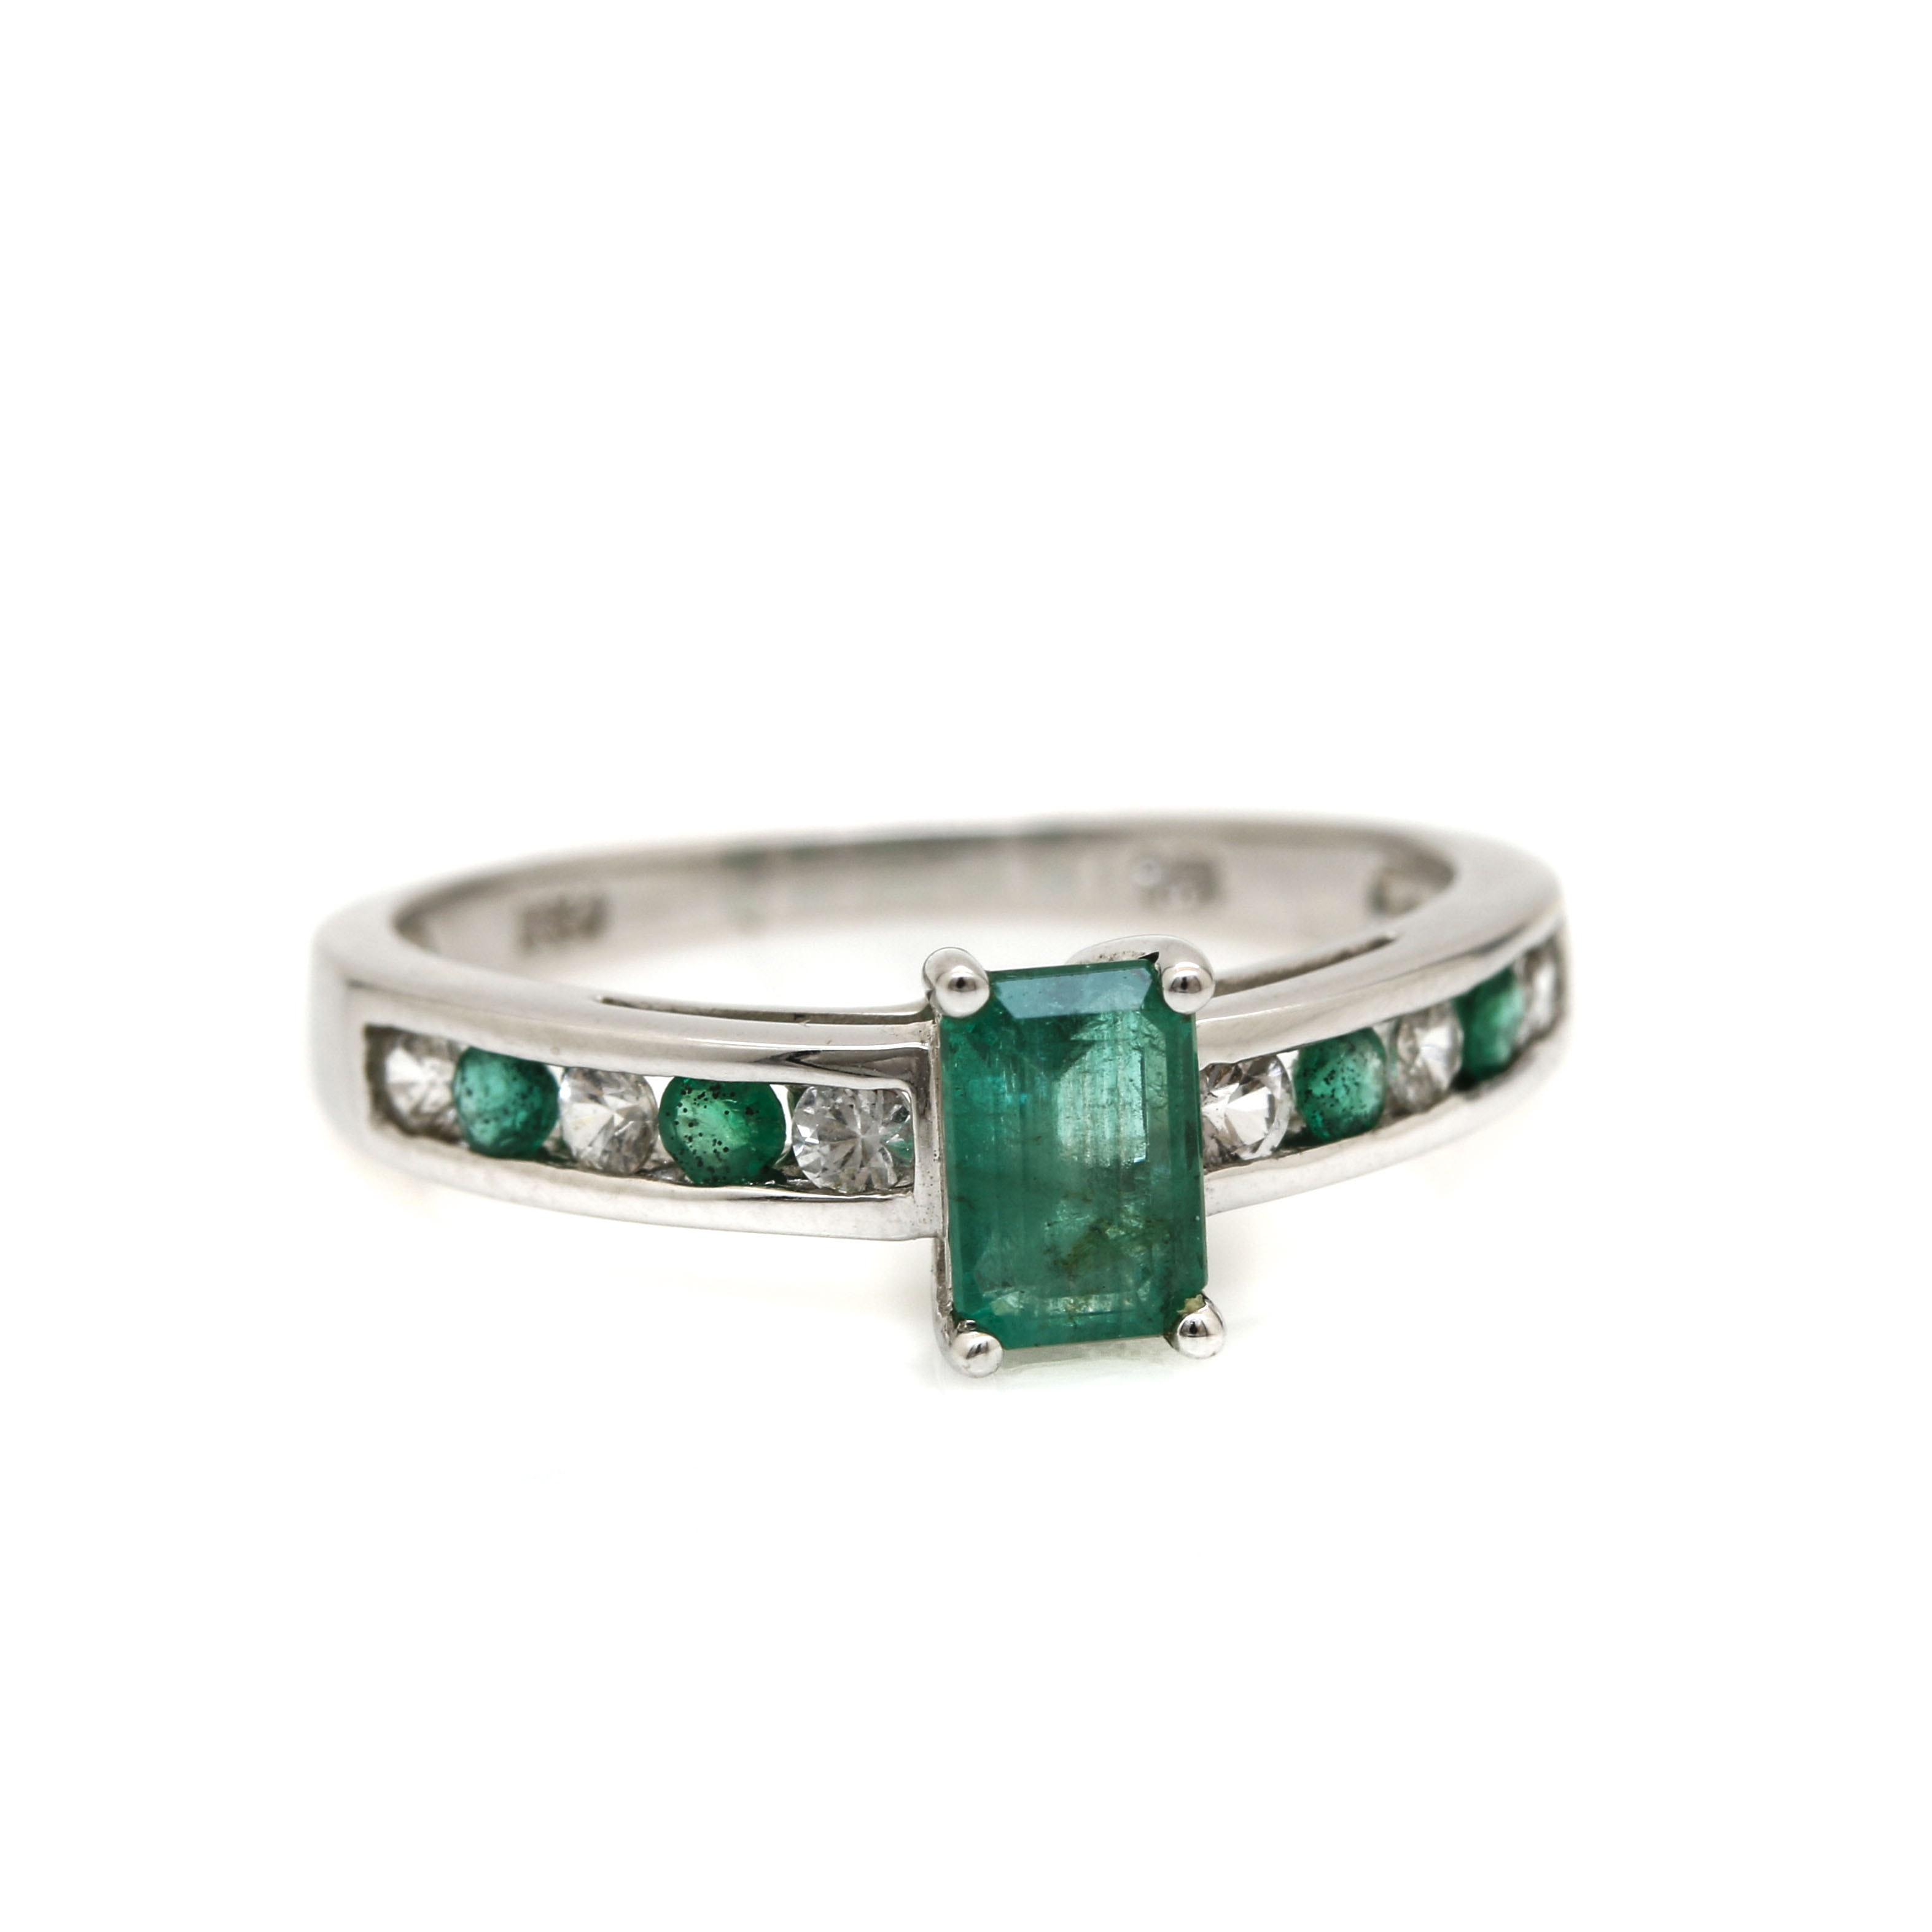 10K White Gold Emerald and White Sapphire Ring